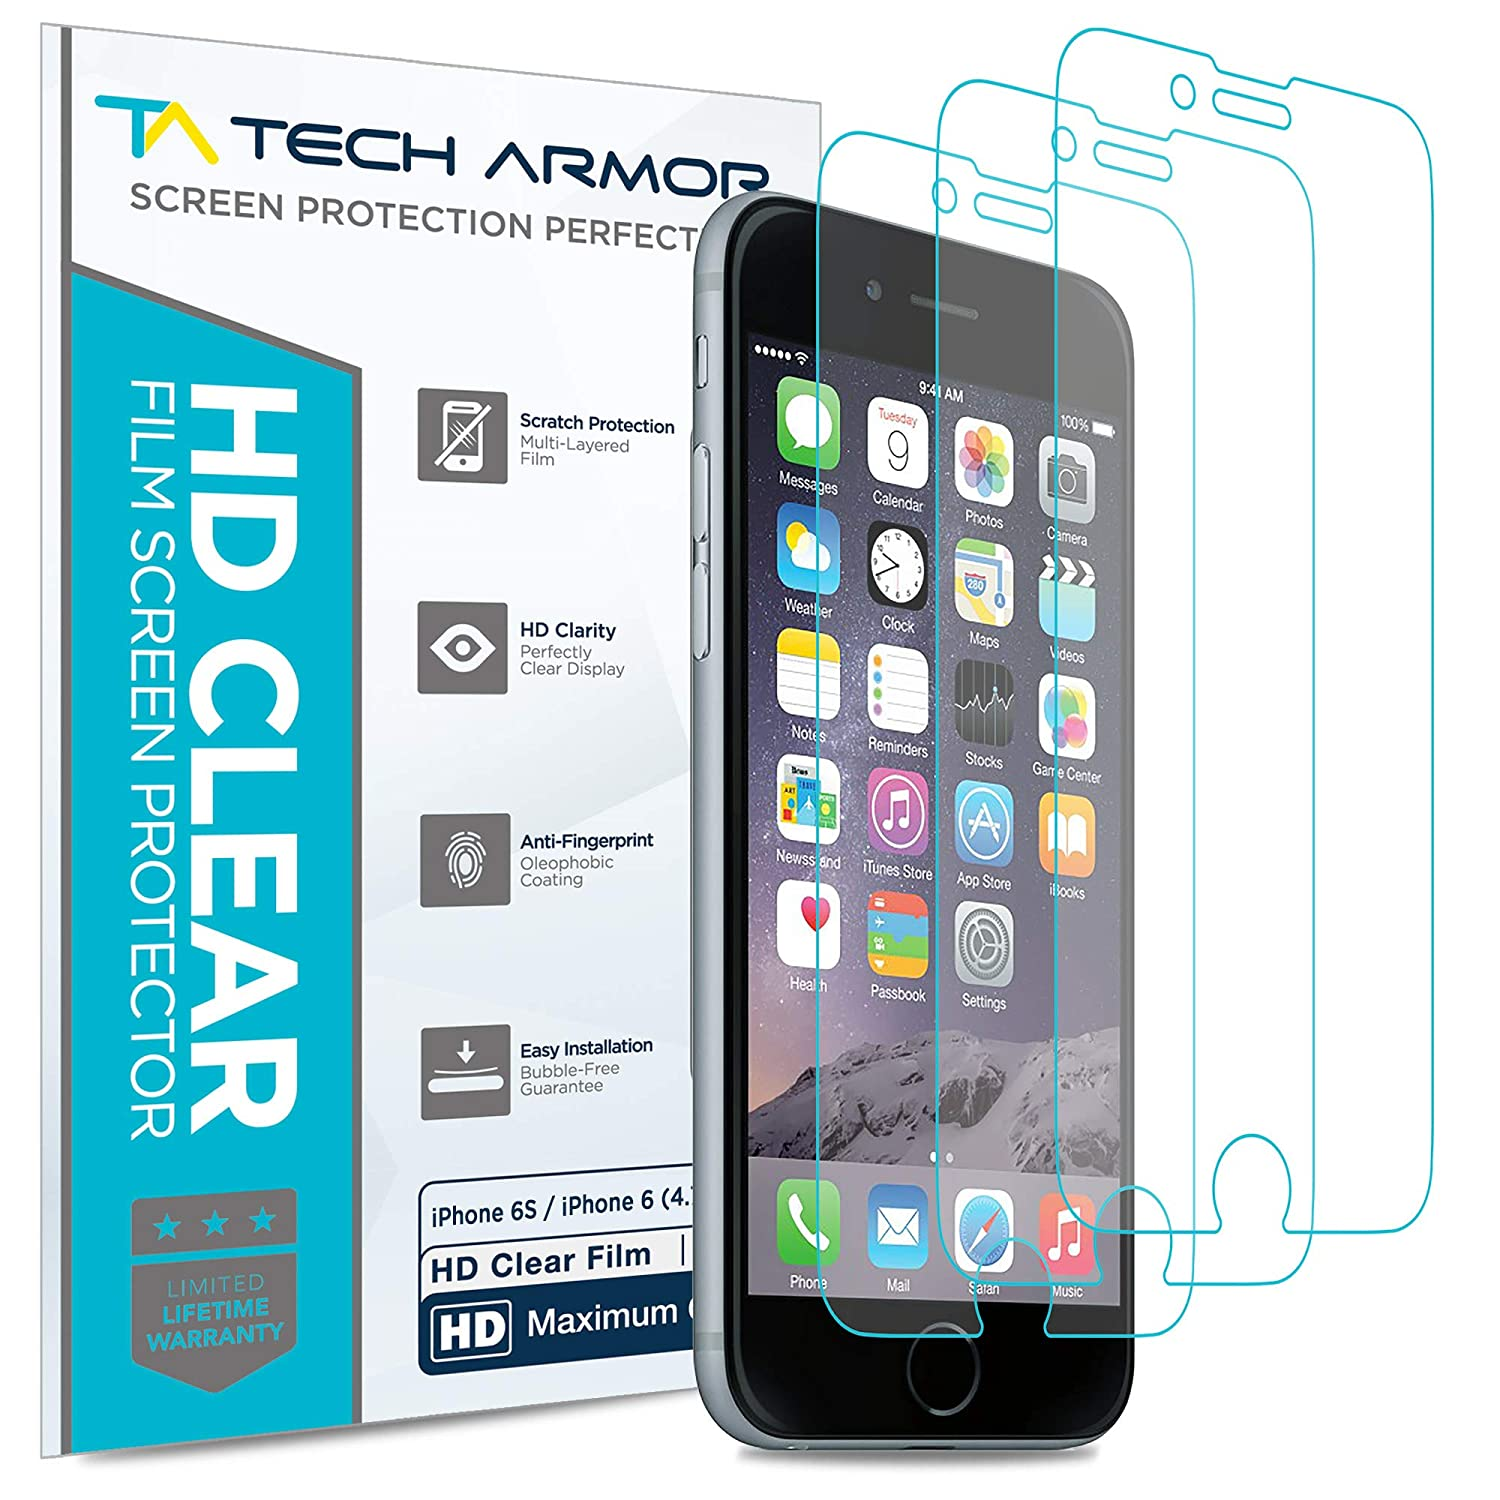 iPhone 6 Screen Protector, Tech Armor High Definition HD,Clear Apple iPhone  6S/iPhone 6 (4.7,inch) Screen Protector [3,Pack]